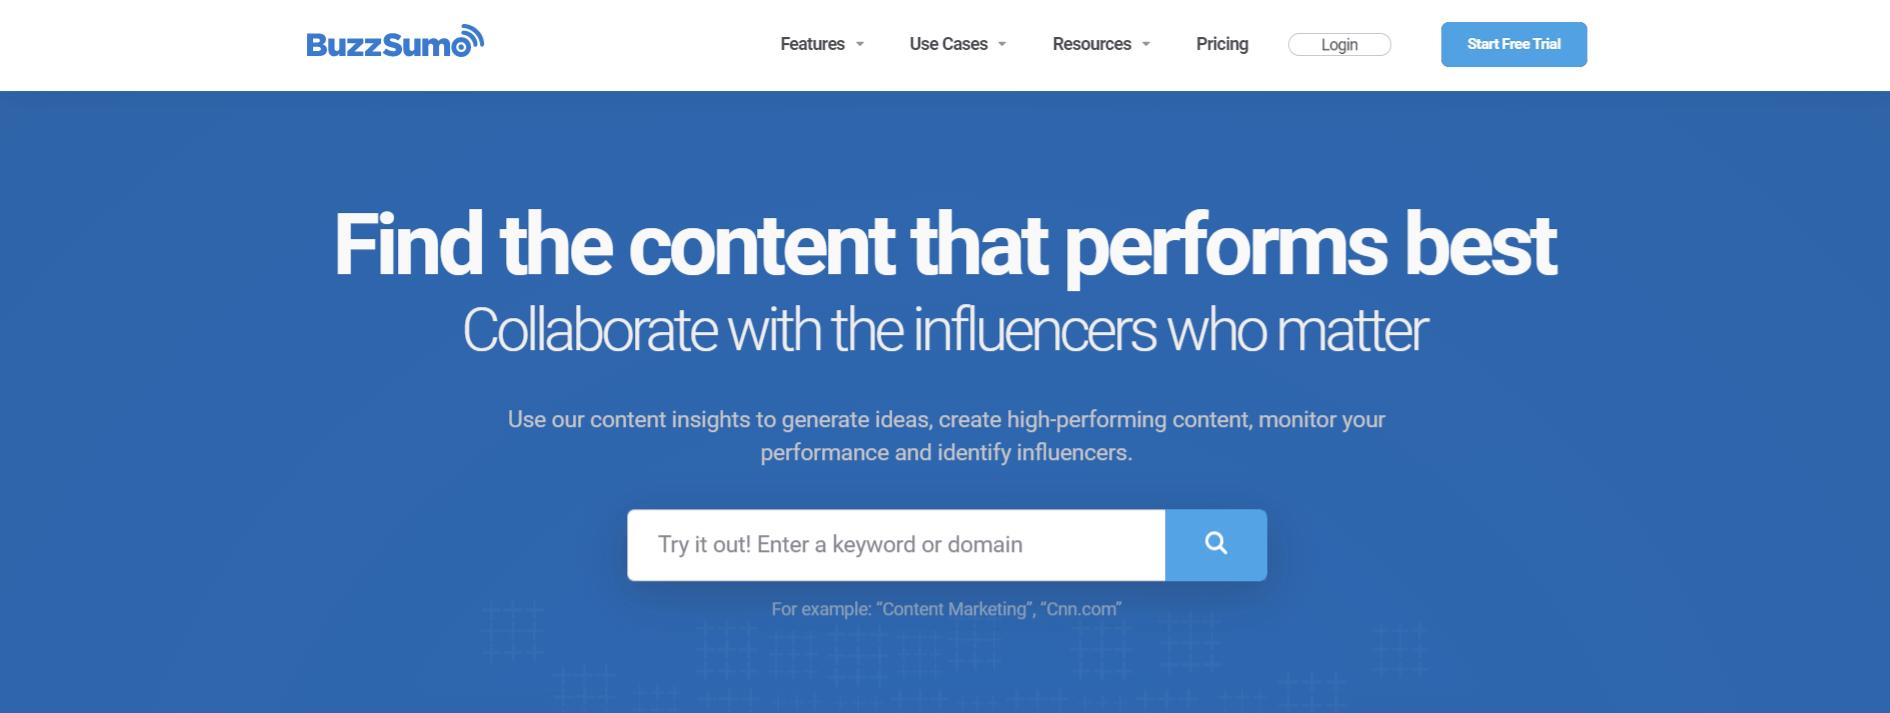 Buzzsumo: Content creation software